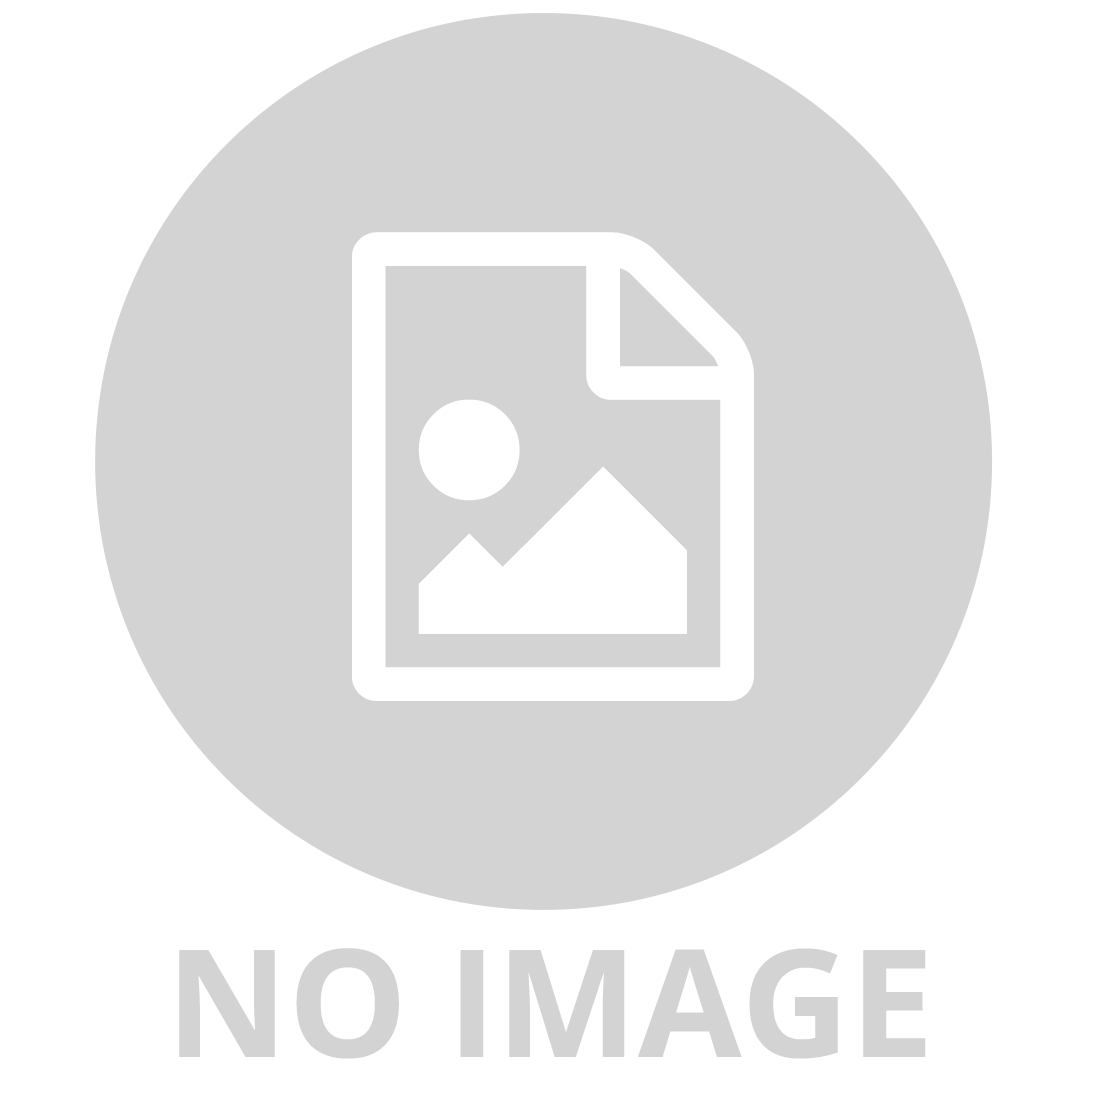 KINDI KIDS- SERIES 3 DRESS UP DOLL- MARSHA MELLO